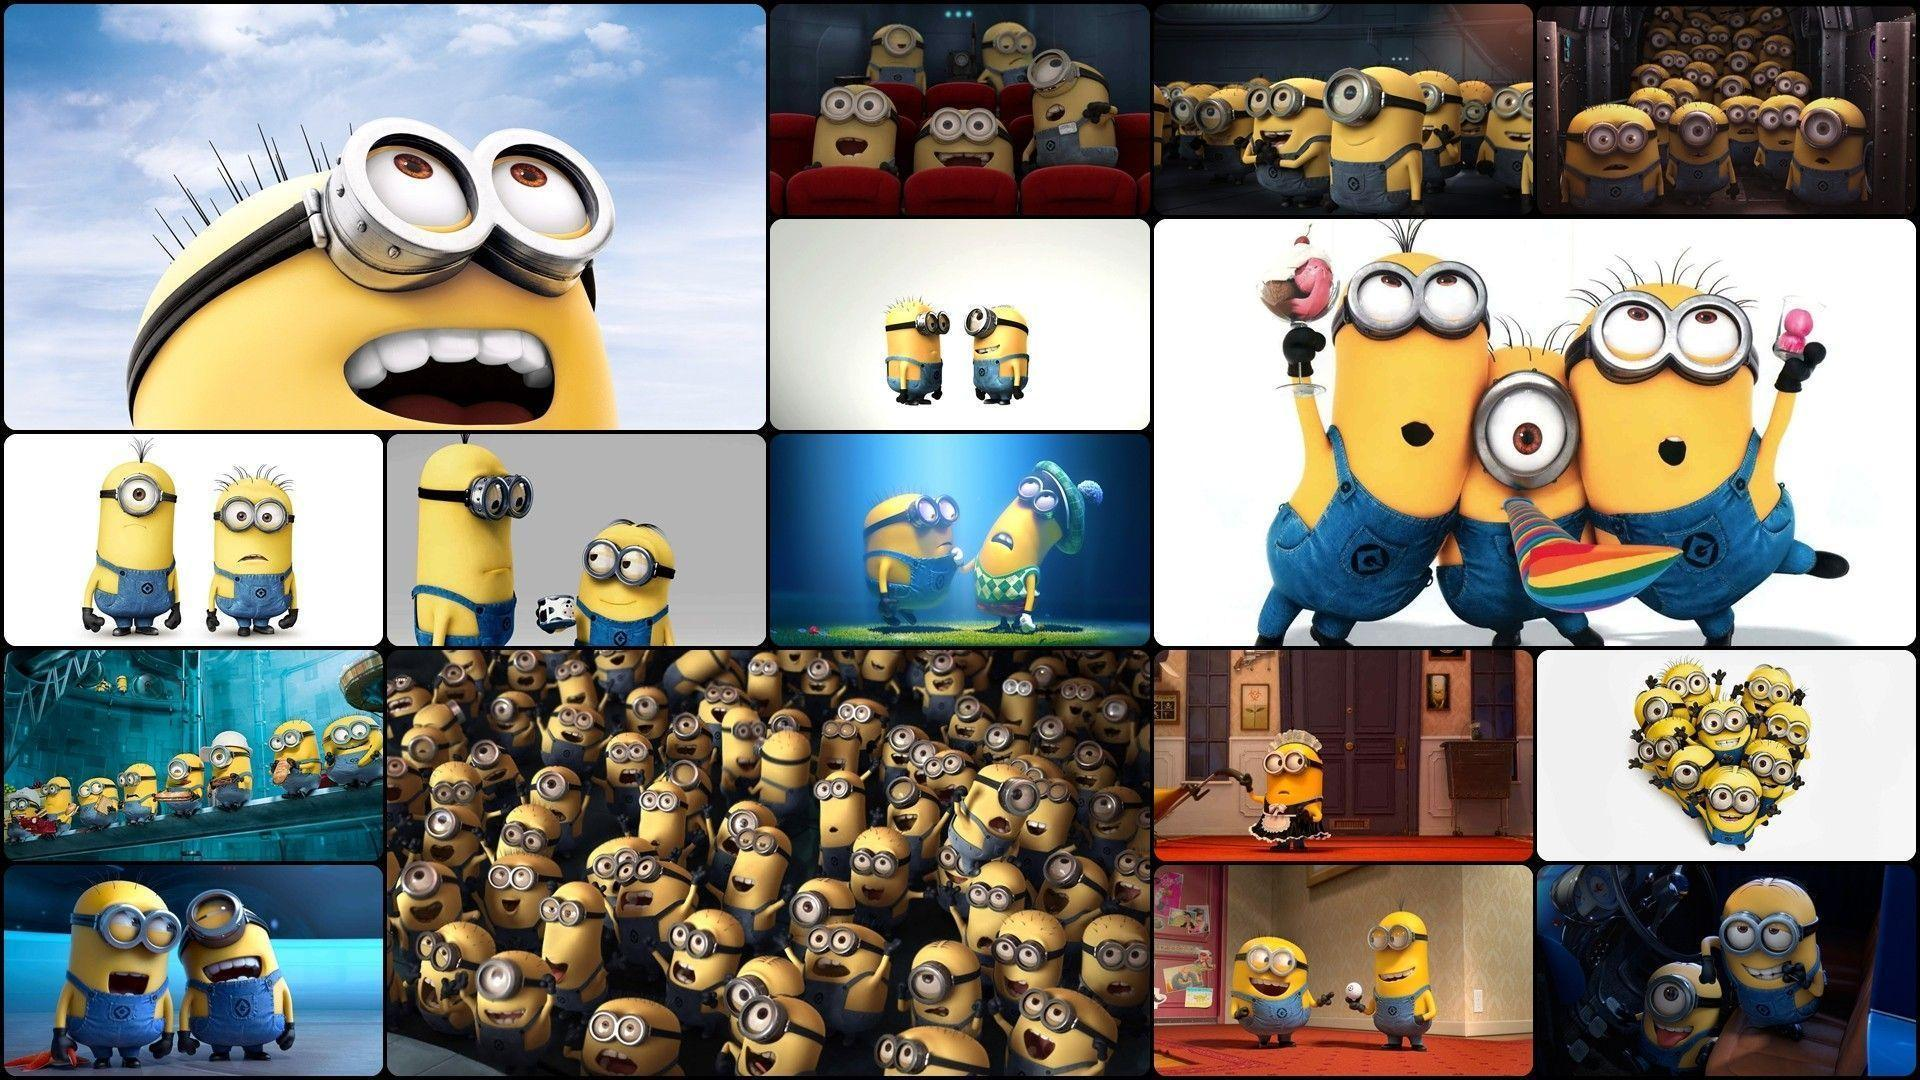 Download 38+ Movie Despicable Me Minion Wallpapers And HD Background In  High Quality. Collection Of Funny And Cool Minion Movie Arts, Pictures And  Images.